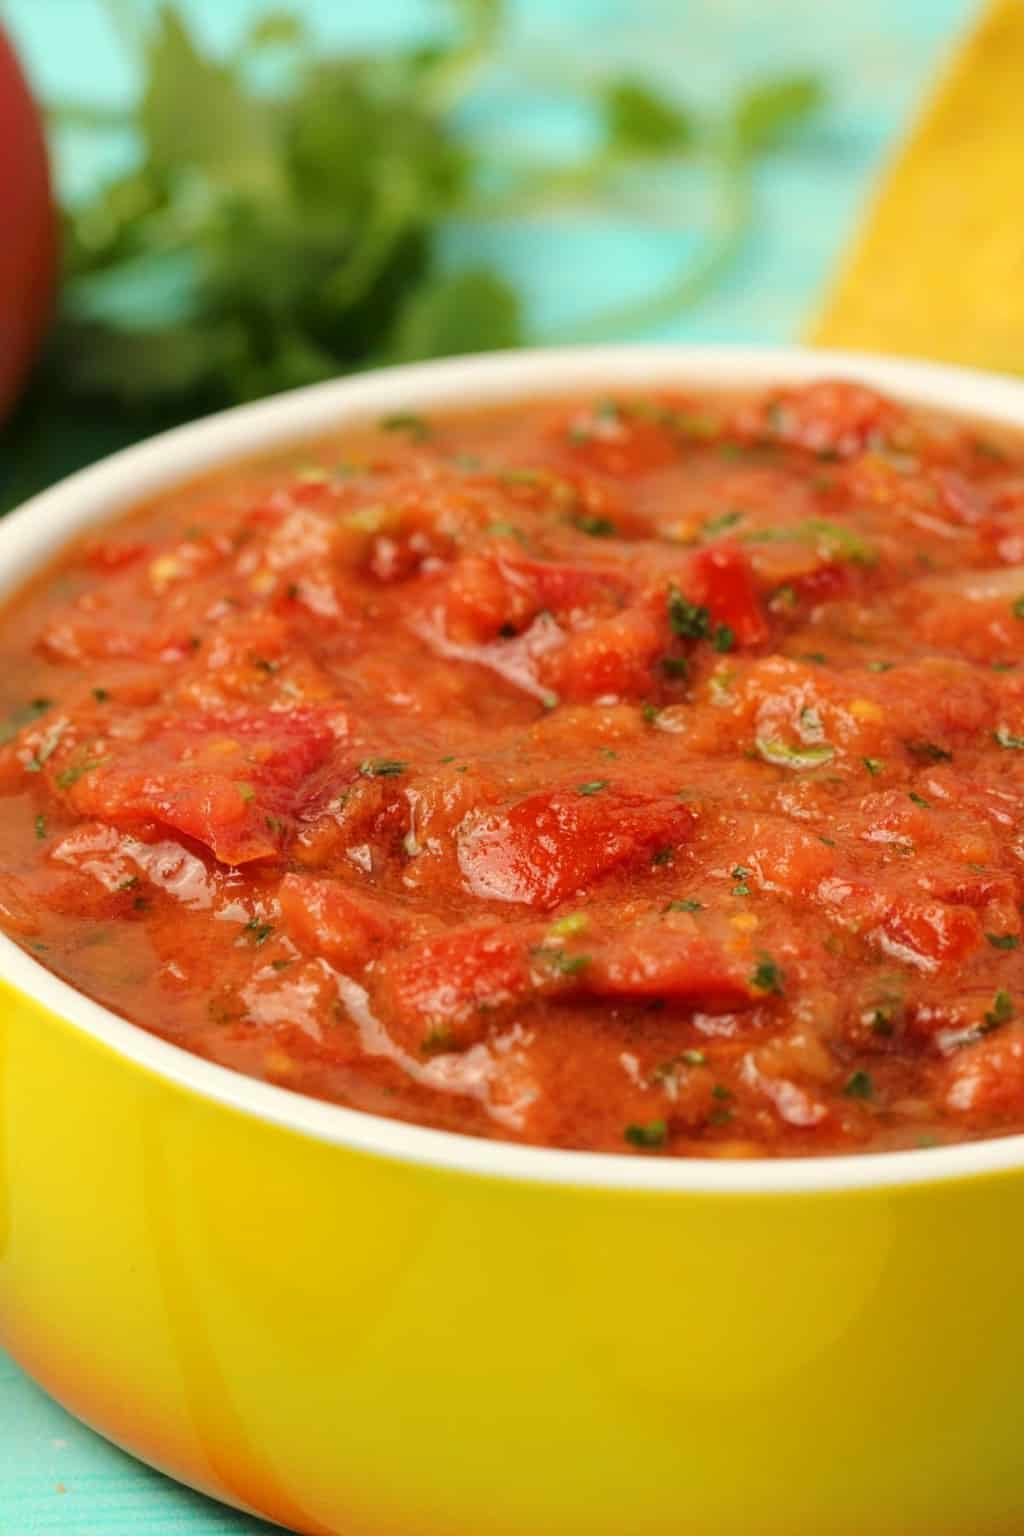 Homemade salsa in a yellow and white glass dish.